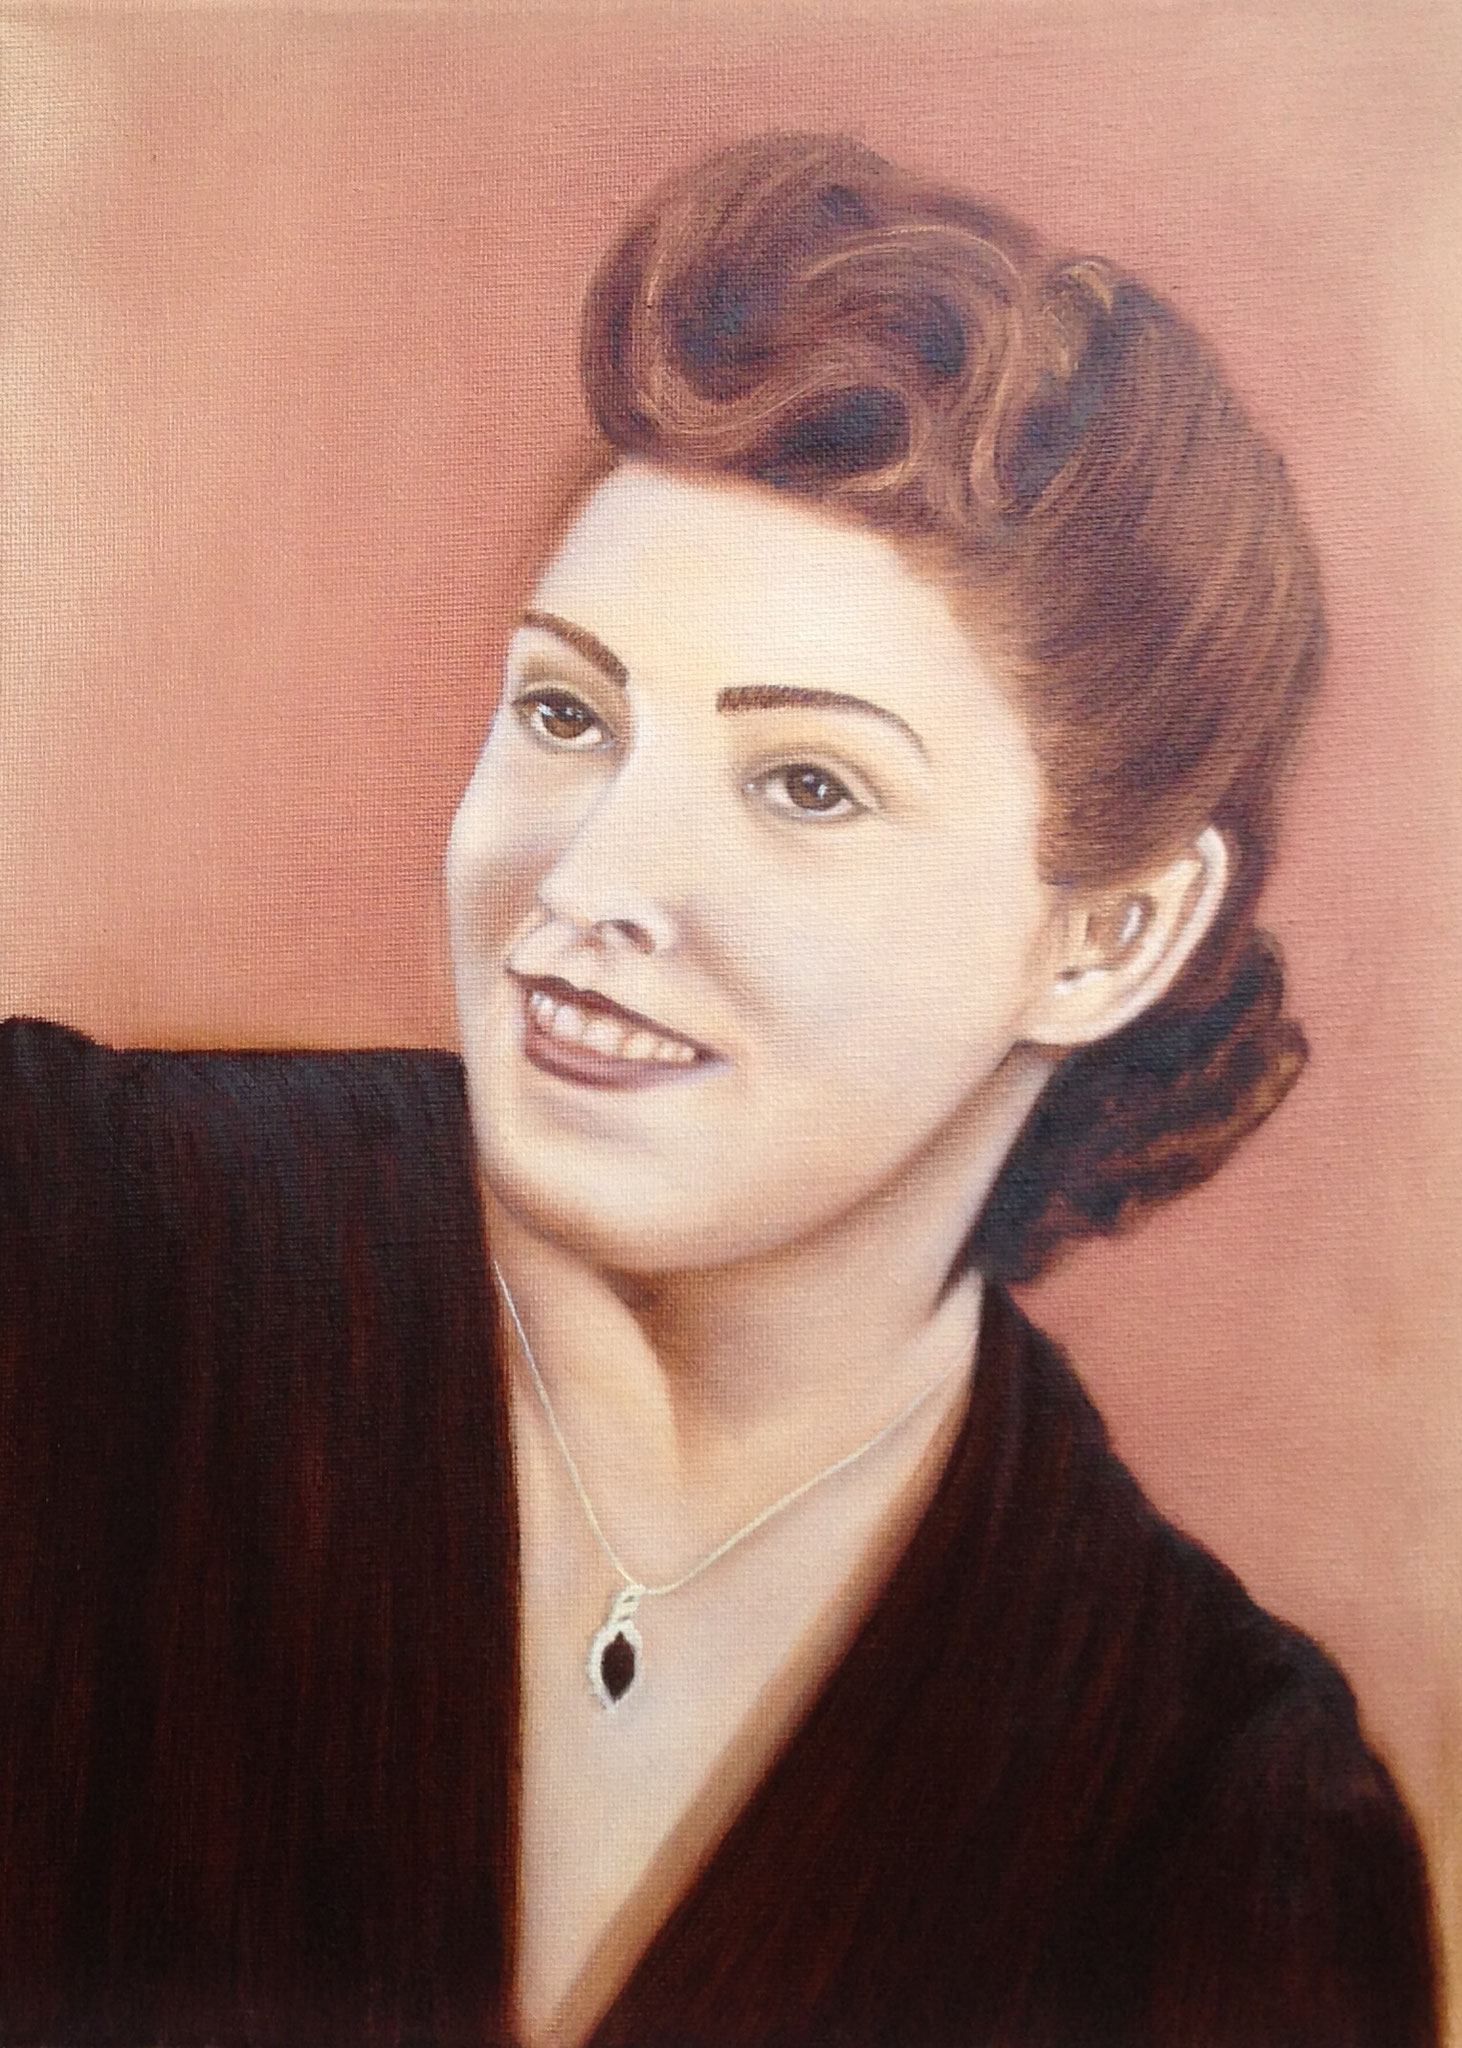 Retro portrait - oil, canvas 40x30, 2017, Private collection